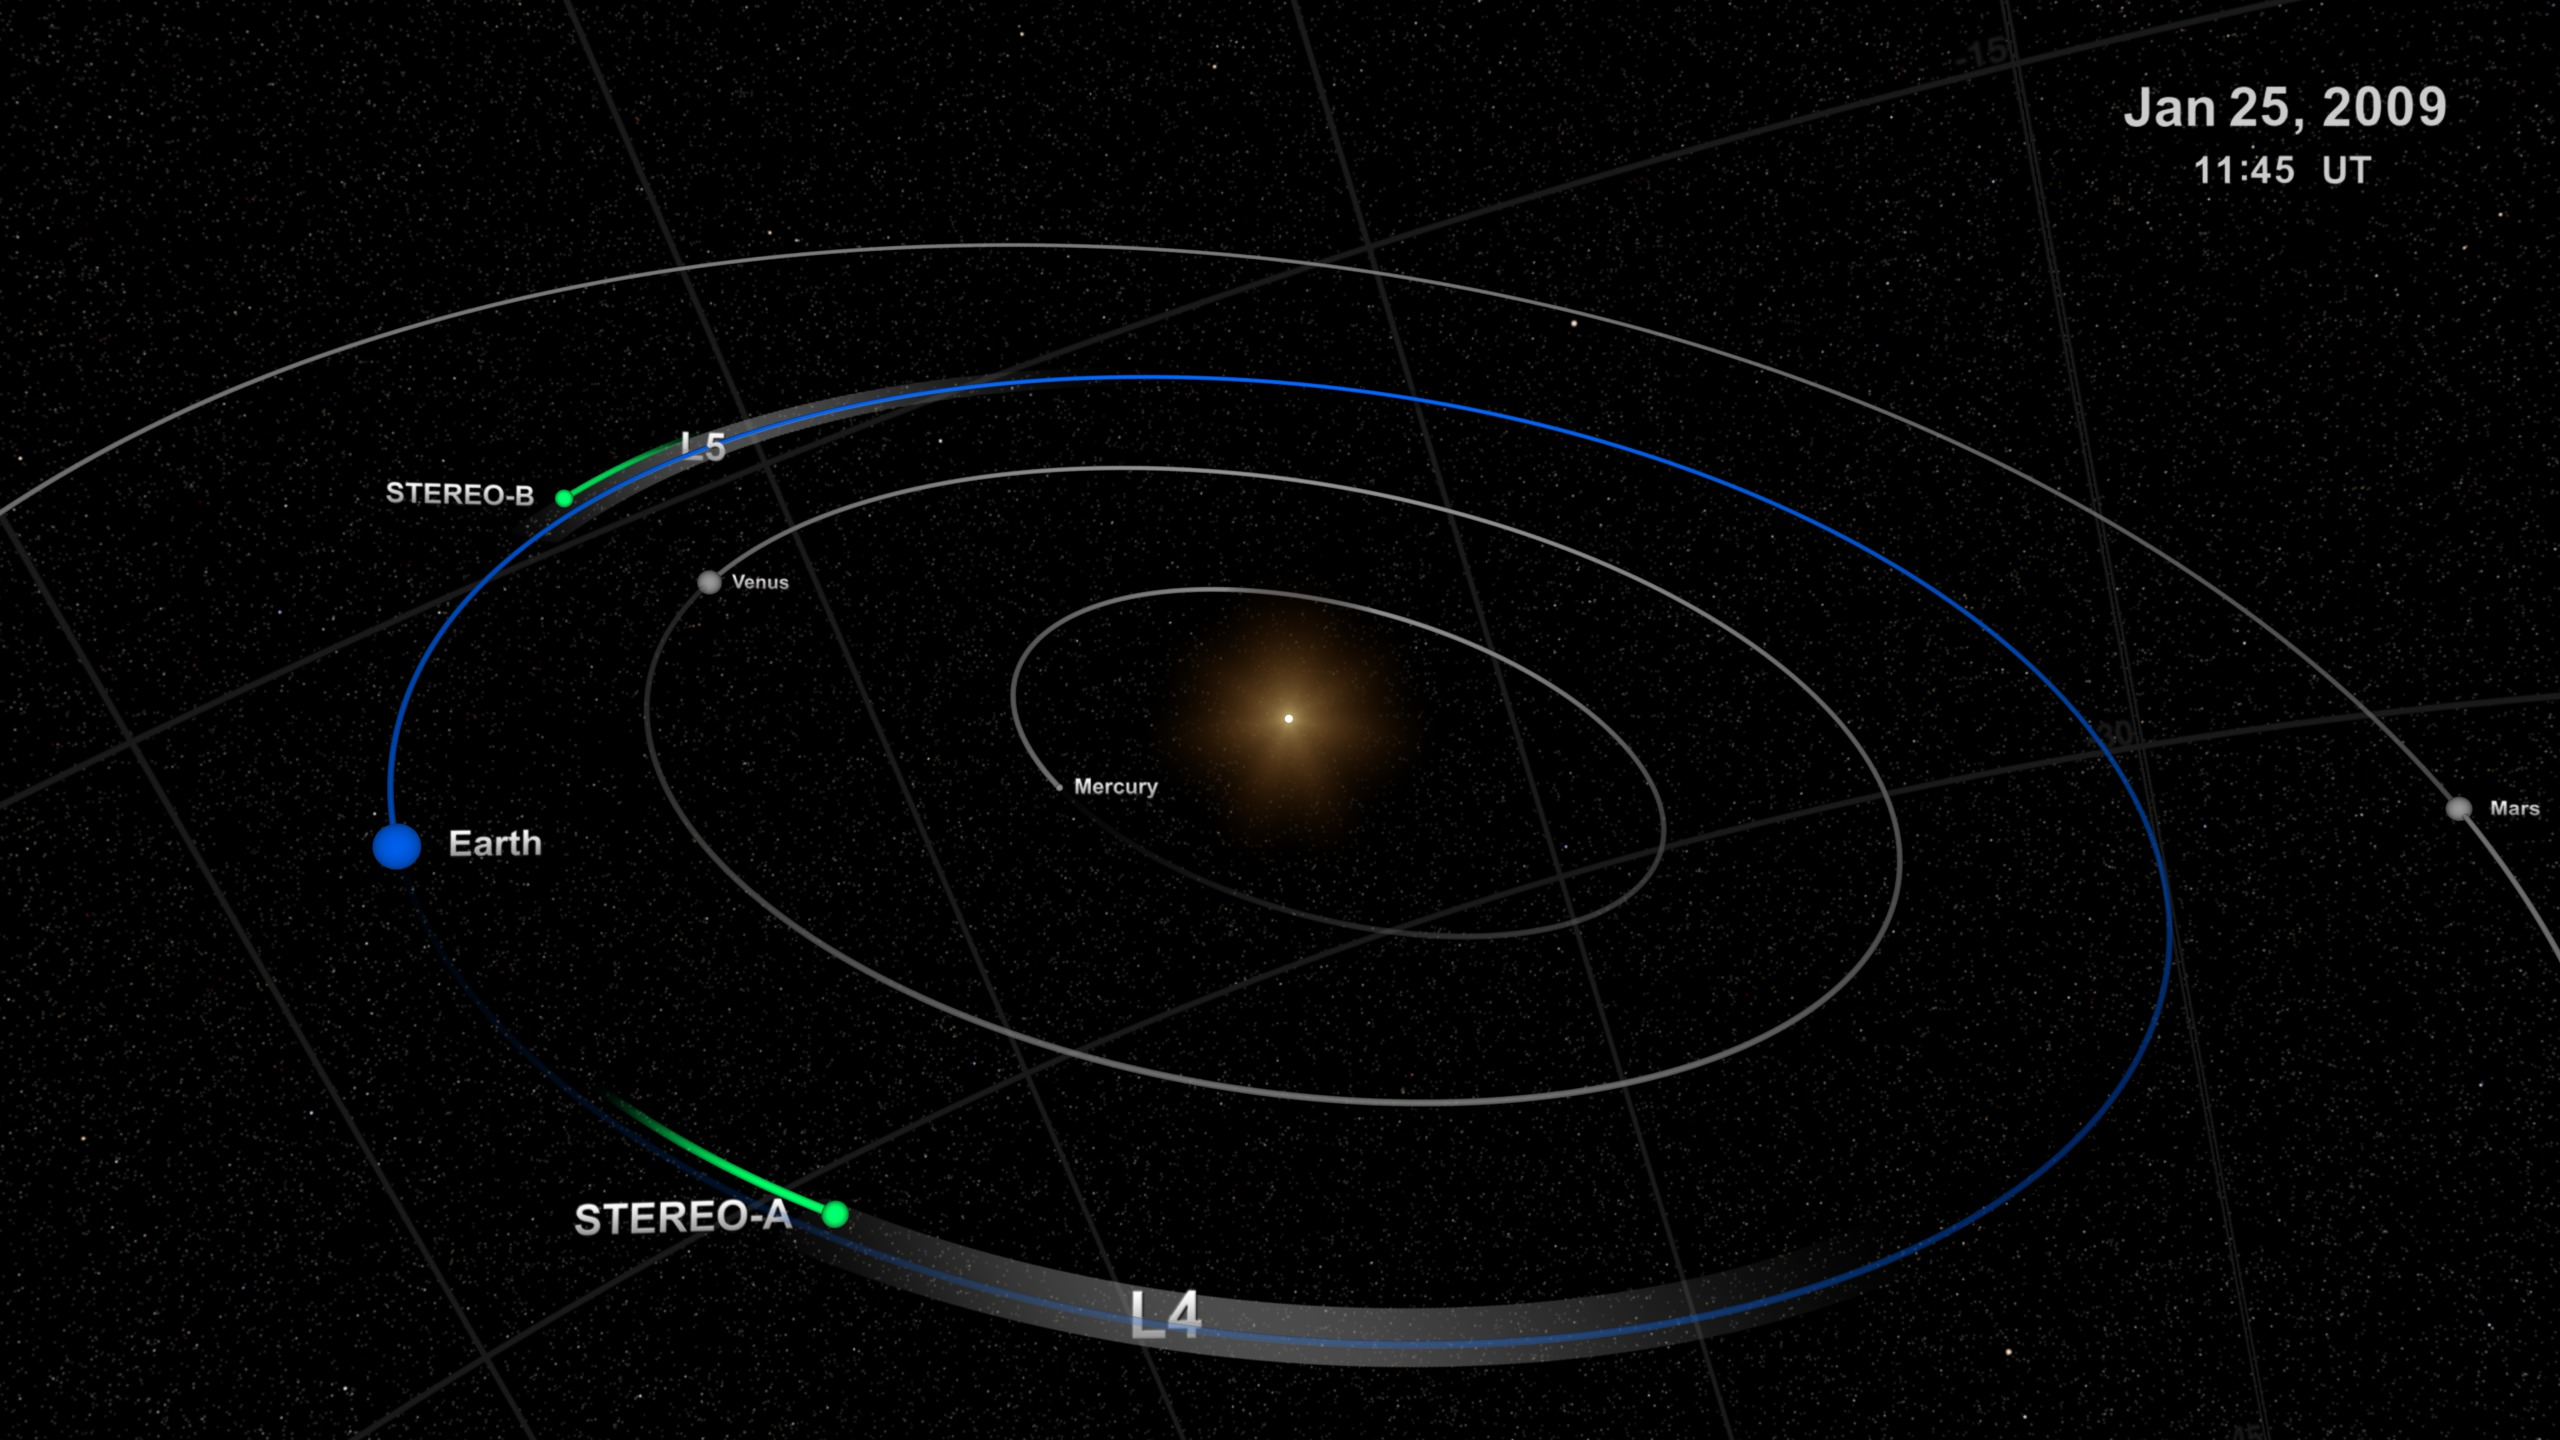 Svs Stereo Visits The Lagrange Points L4 And L5